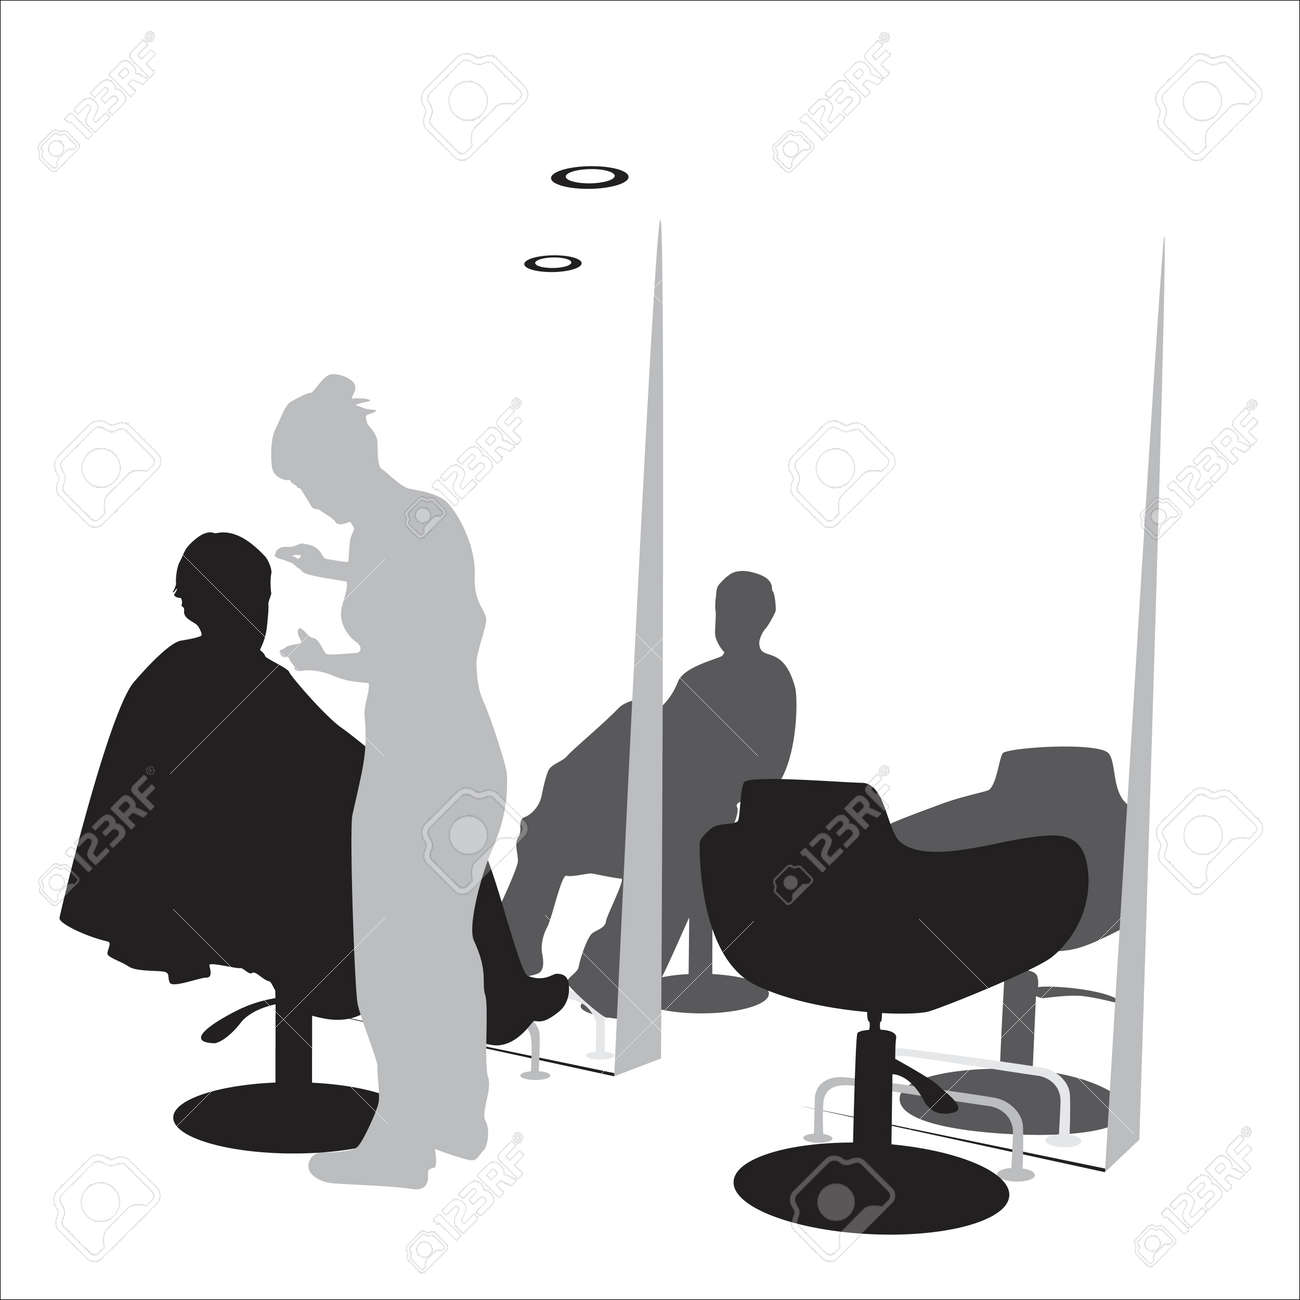 Hair salon chair isolated stock photos illustrations and vector art - Styling Young Man In Hair Styling Salon